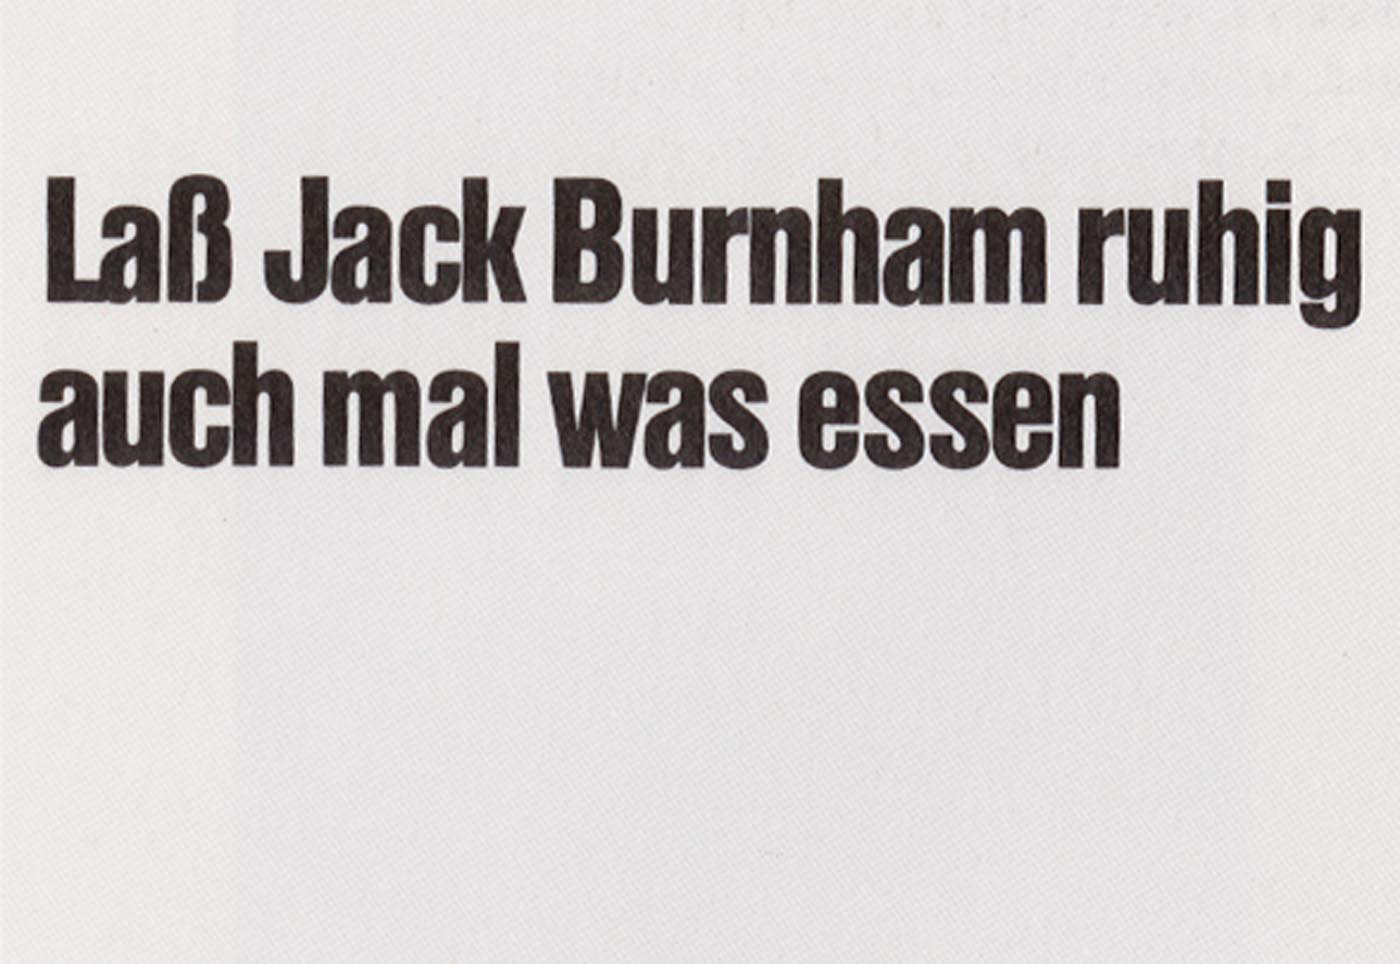 Joseph Beuys - Jack Burnham, 1974, offset on cardstock, stamps reproduced